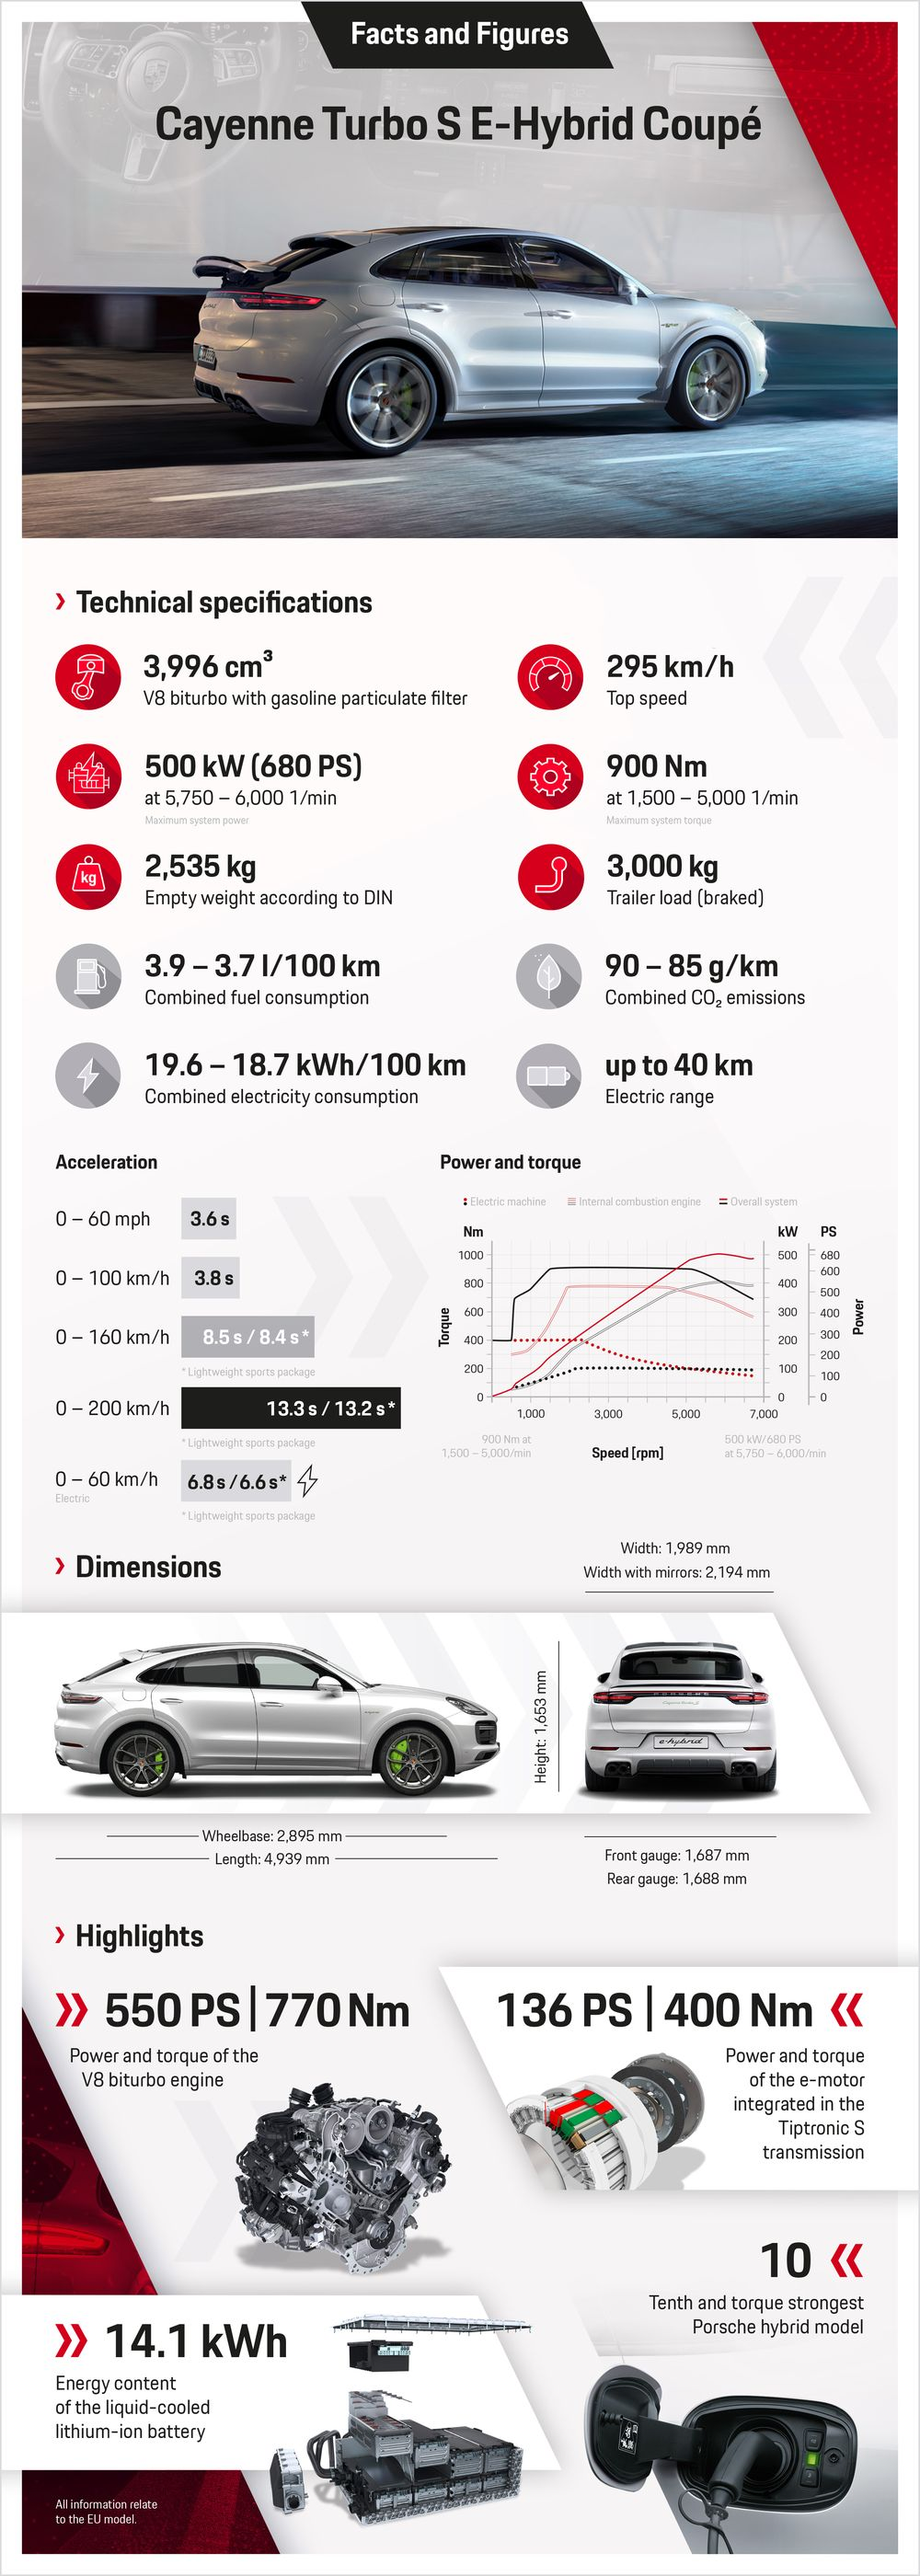 Porsche Cayenne Turbo S E Hybrid Is The New Least Efficient Phev